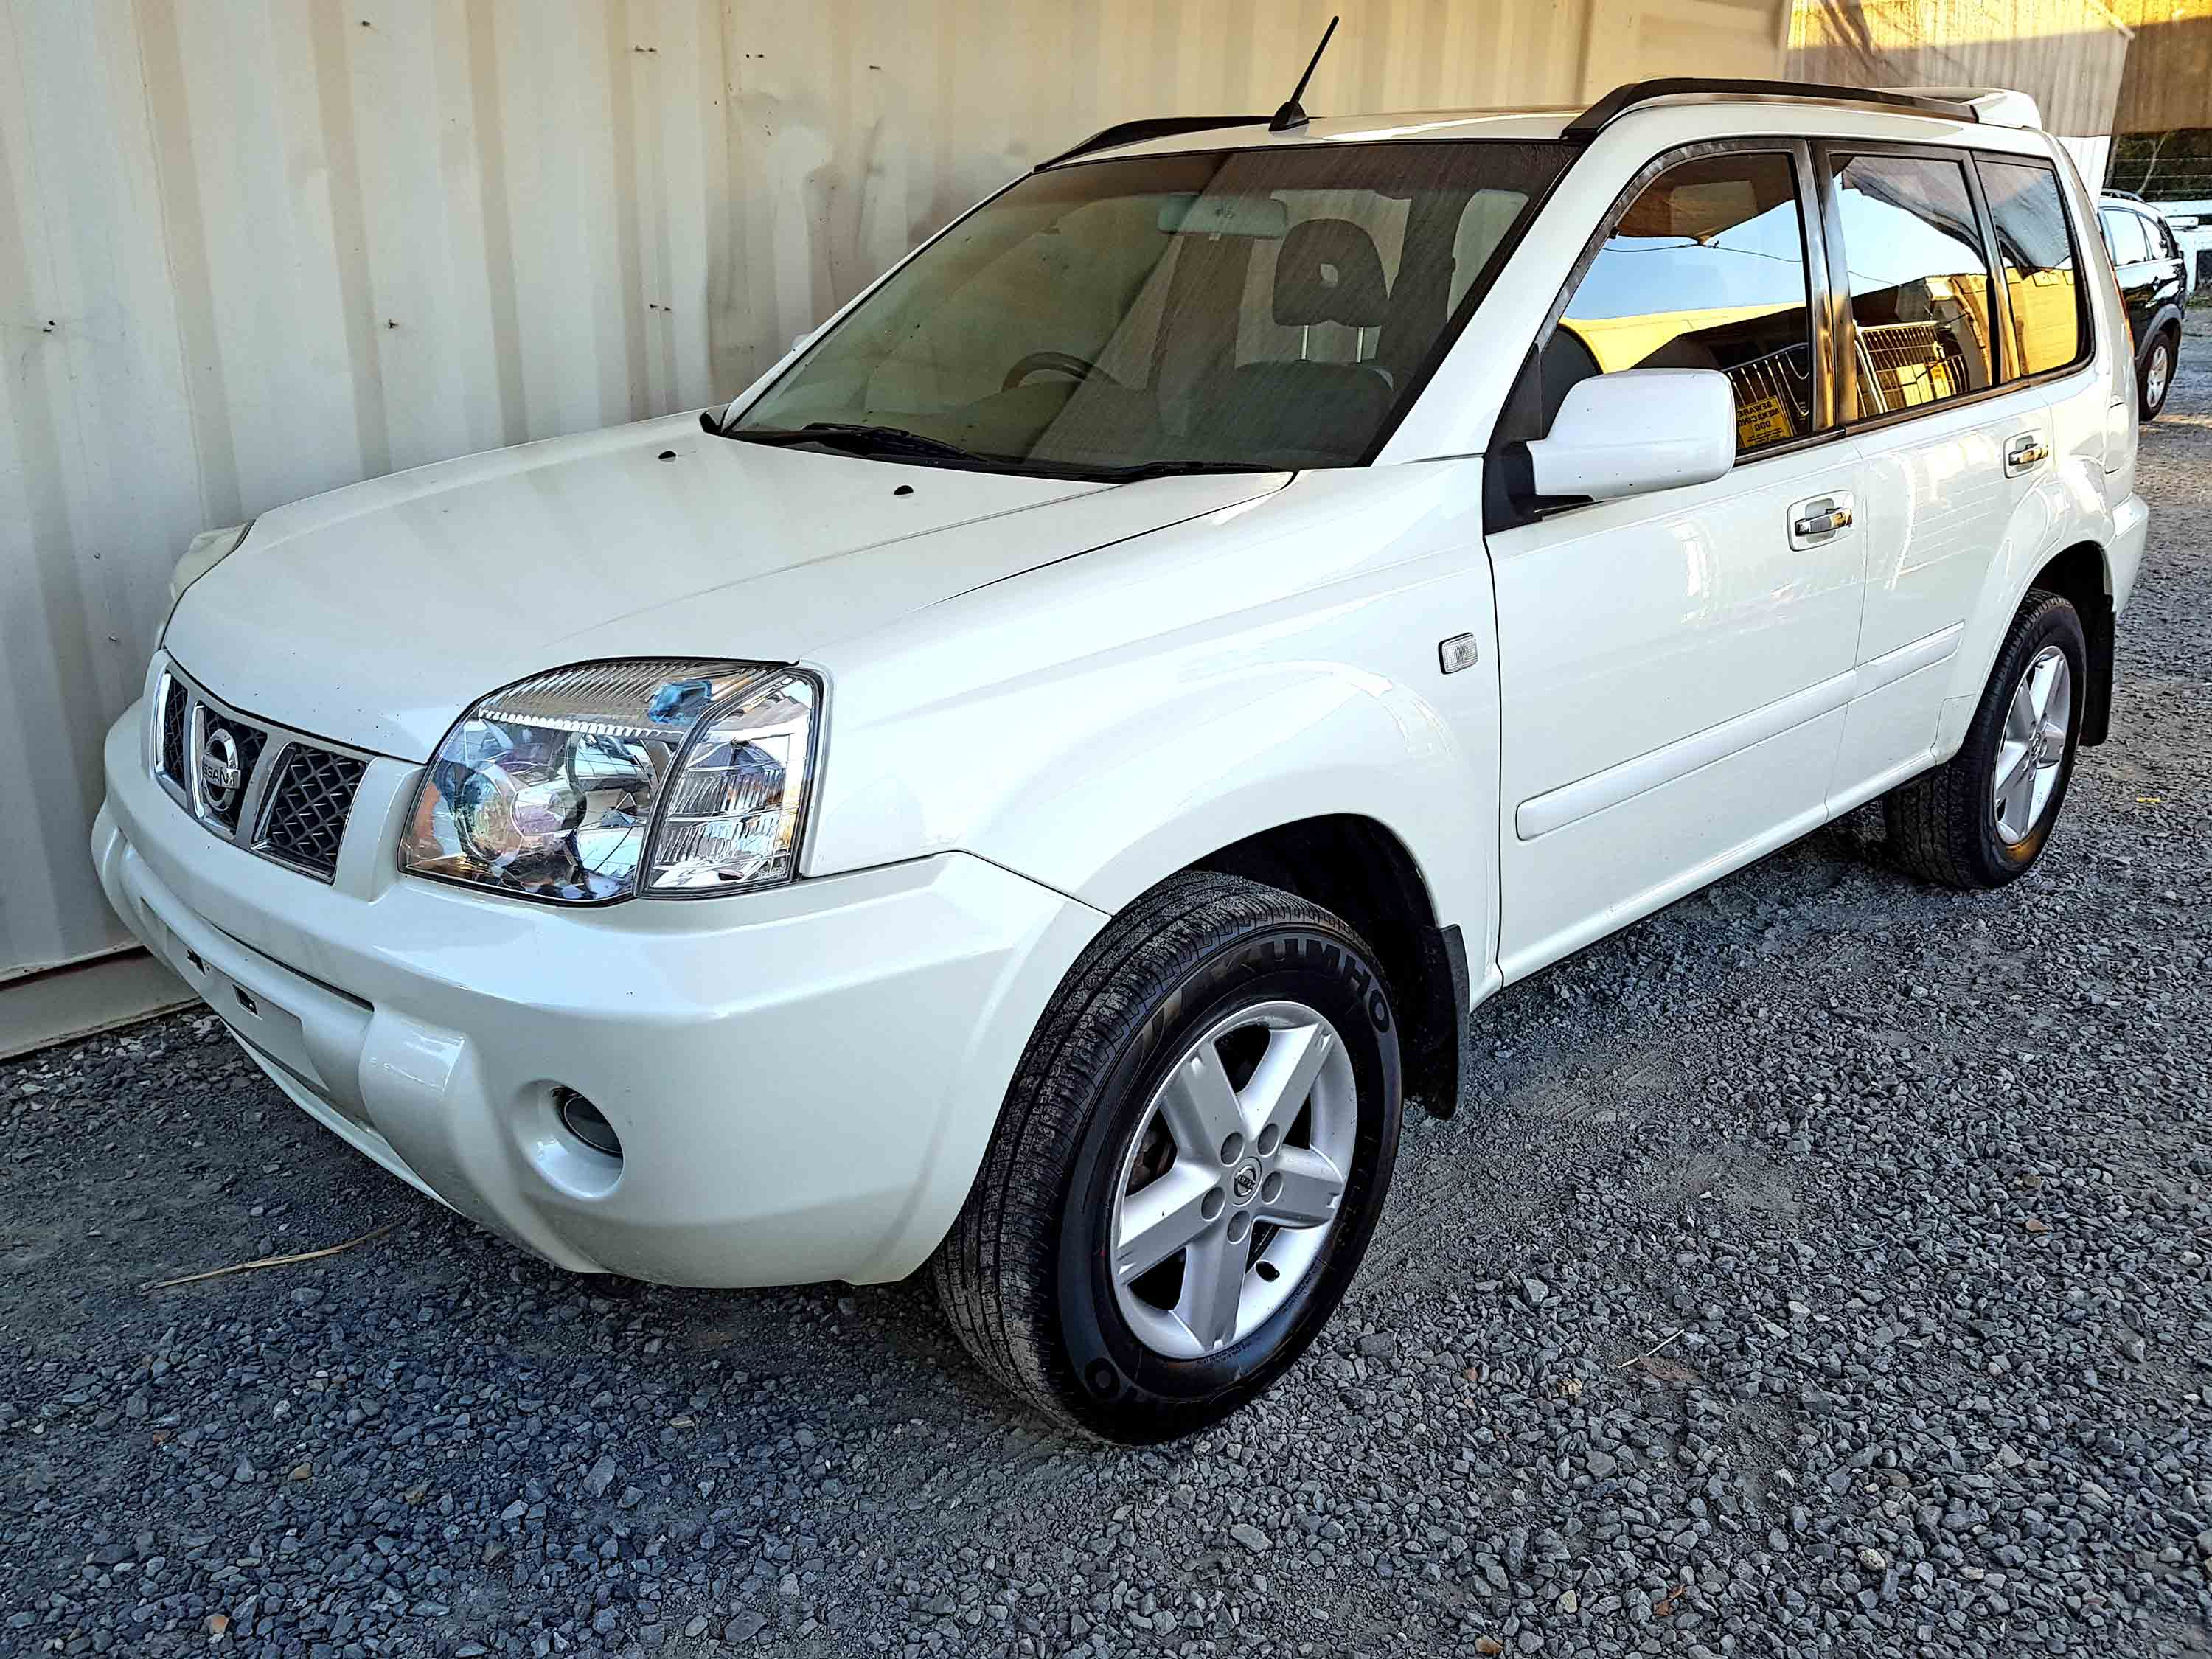 automatic 4x4 suv nissan x trail ti 2005 white used. Black Bedroom Furniture Sets. Home Design Ideas